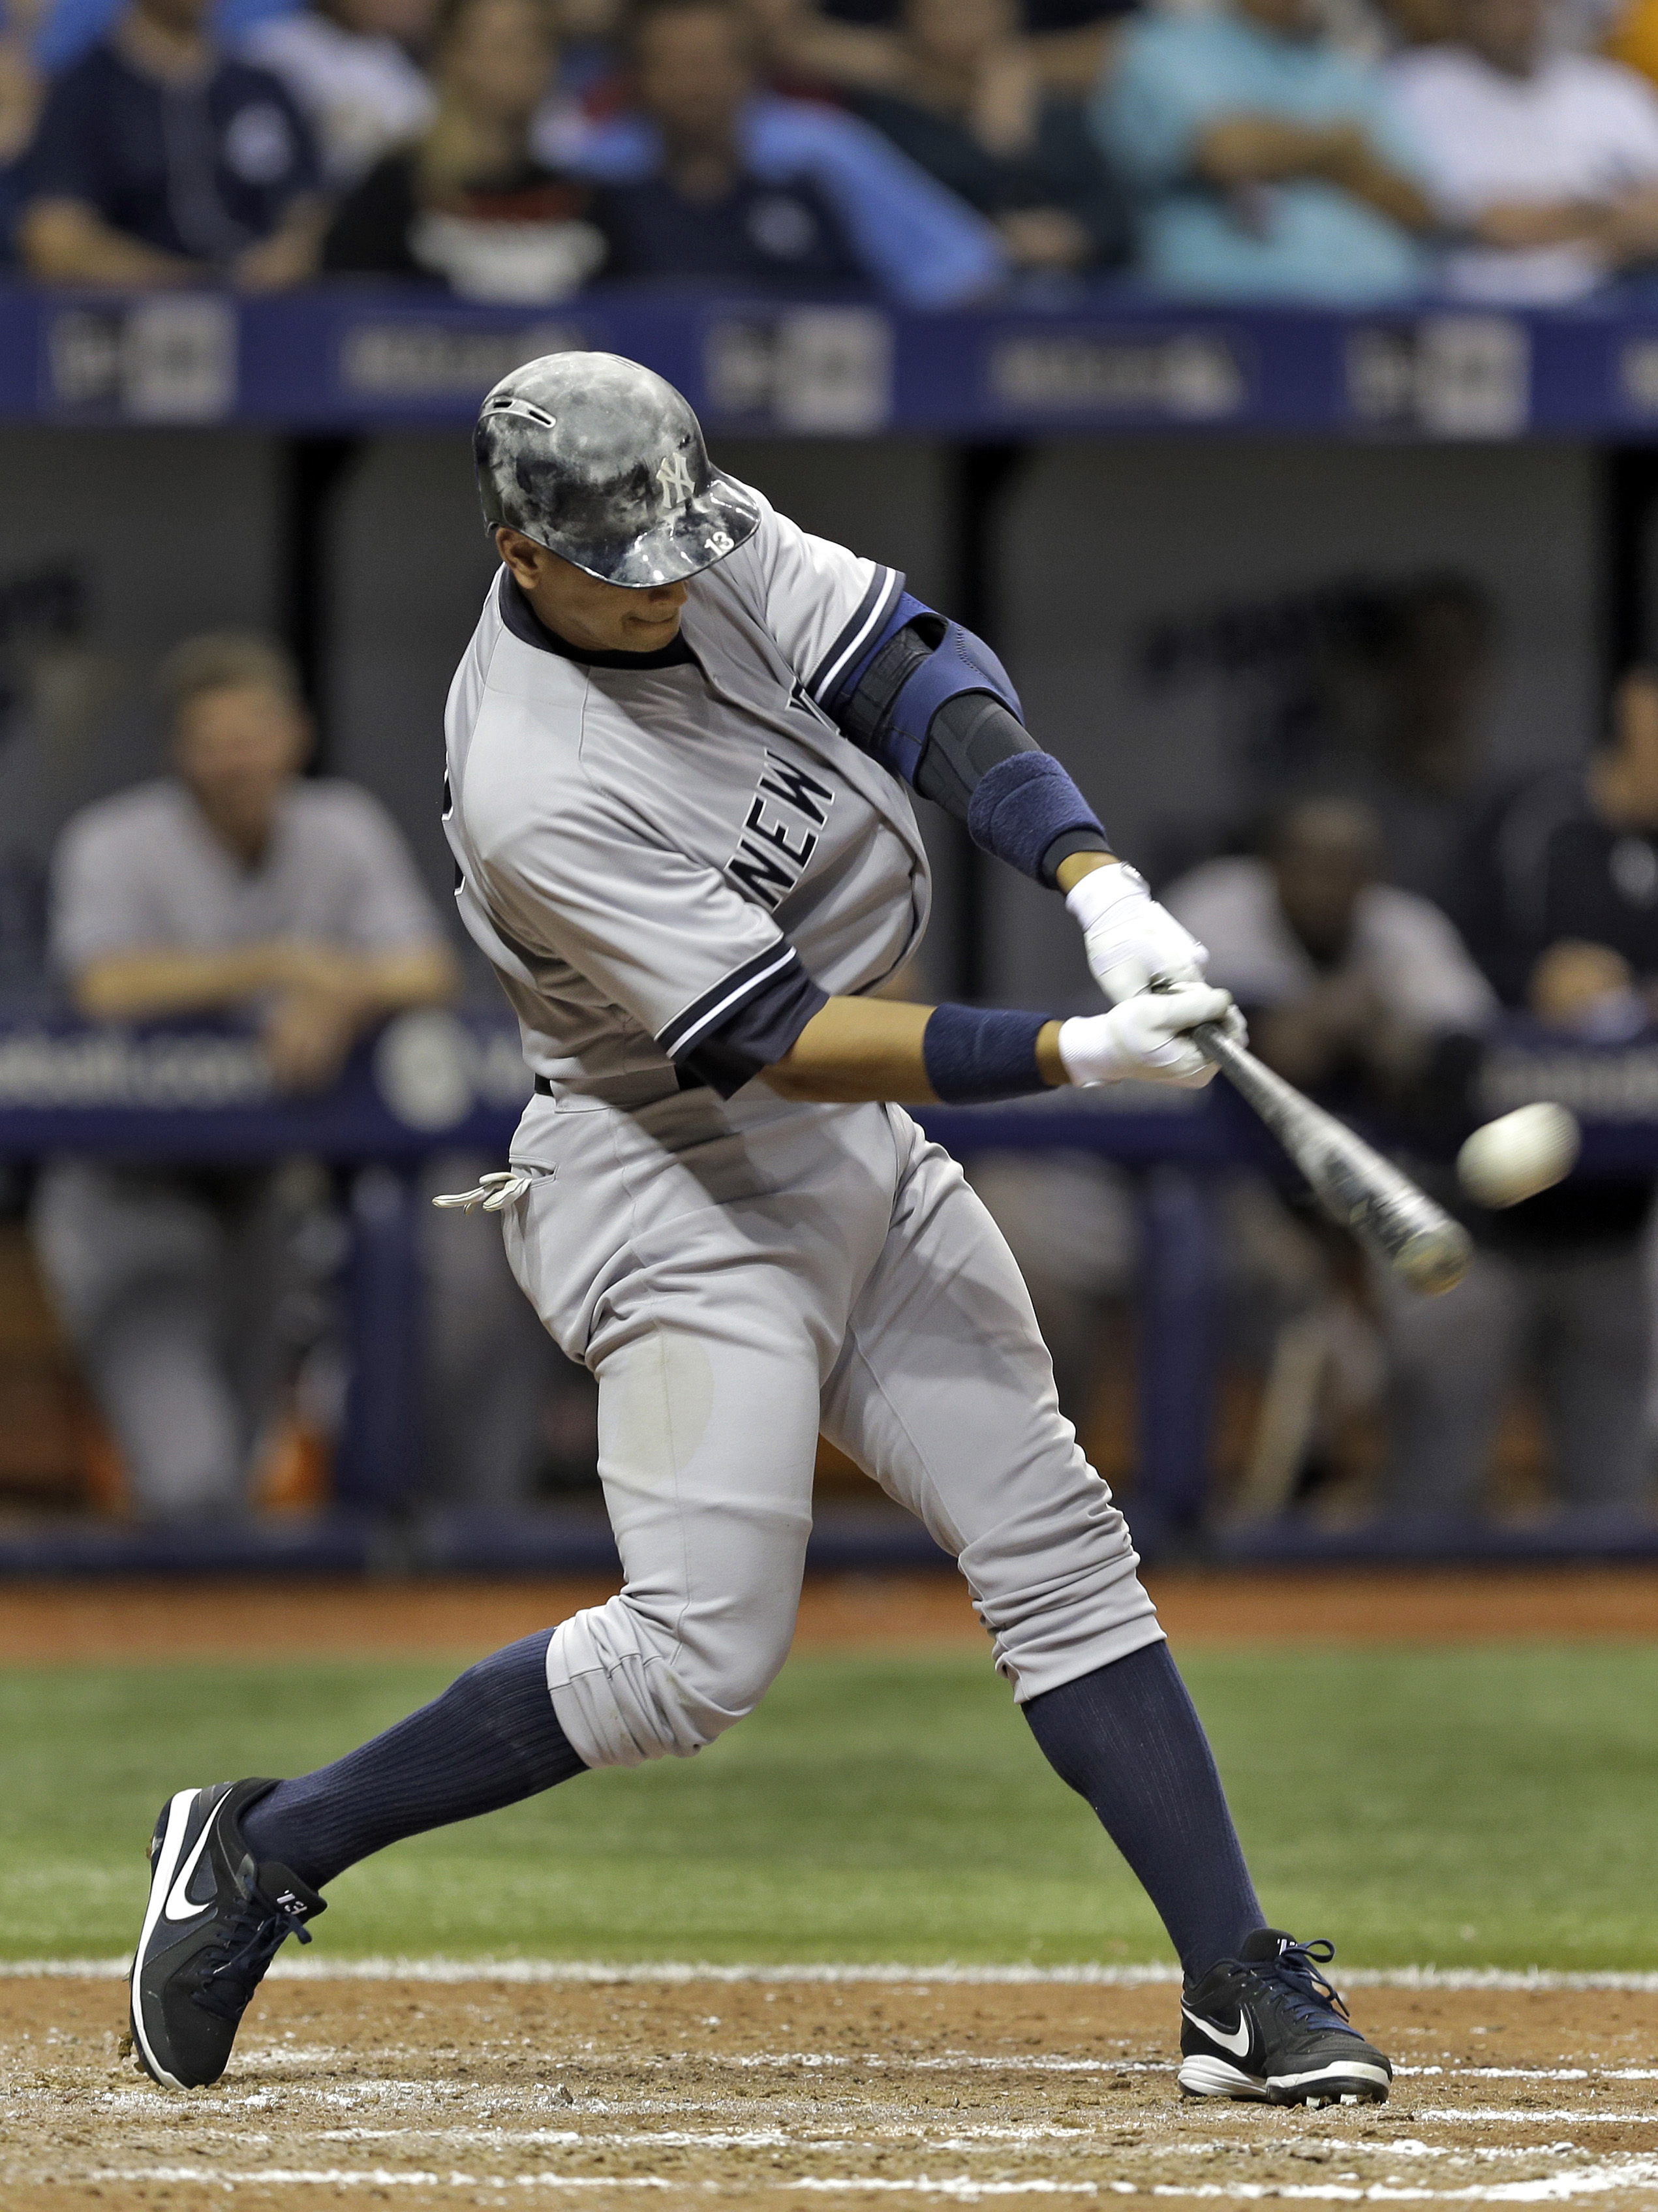 New York Yankees' Alex Rodriguez connects for a two-run home run off Tampa Bay Rays relief pitcher Ernesto Frieri during the sixth inning of a baseball game Friday, April 17, 2015, in St. Petersburg, Fla. Yankees' Brian McCann also scored. (AP Photo/Chris